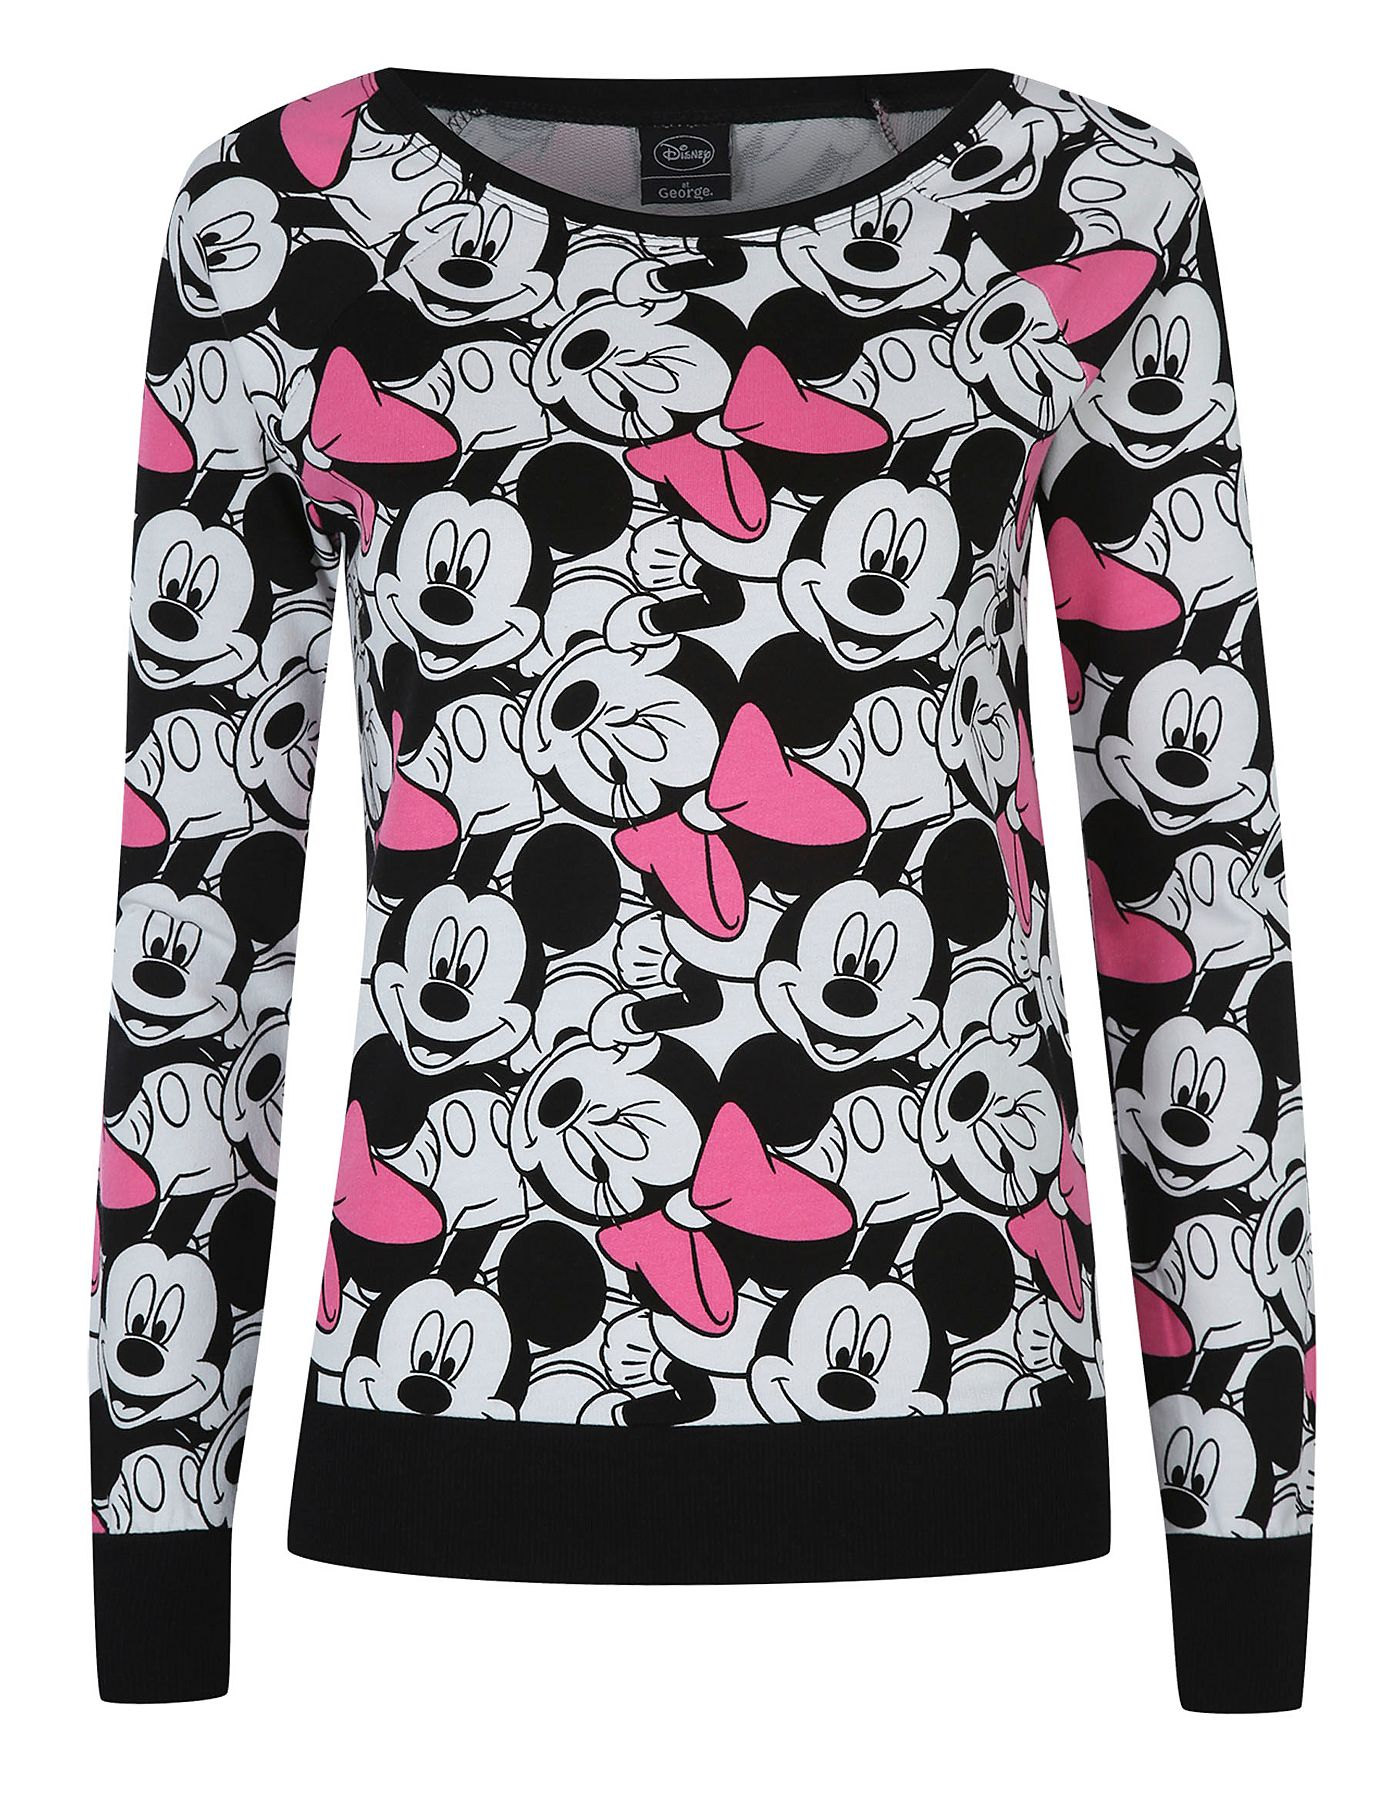 Ladies leather gloves asda - Minnie And Mickey Mouse Sweater Women George At Asda